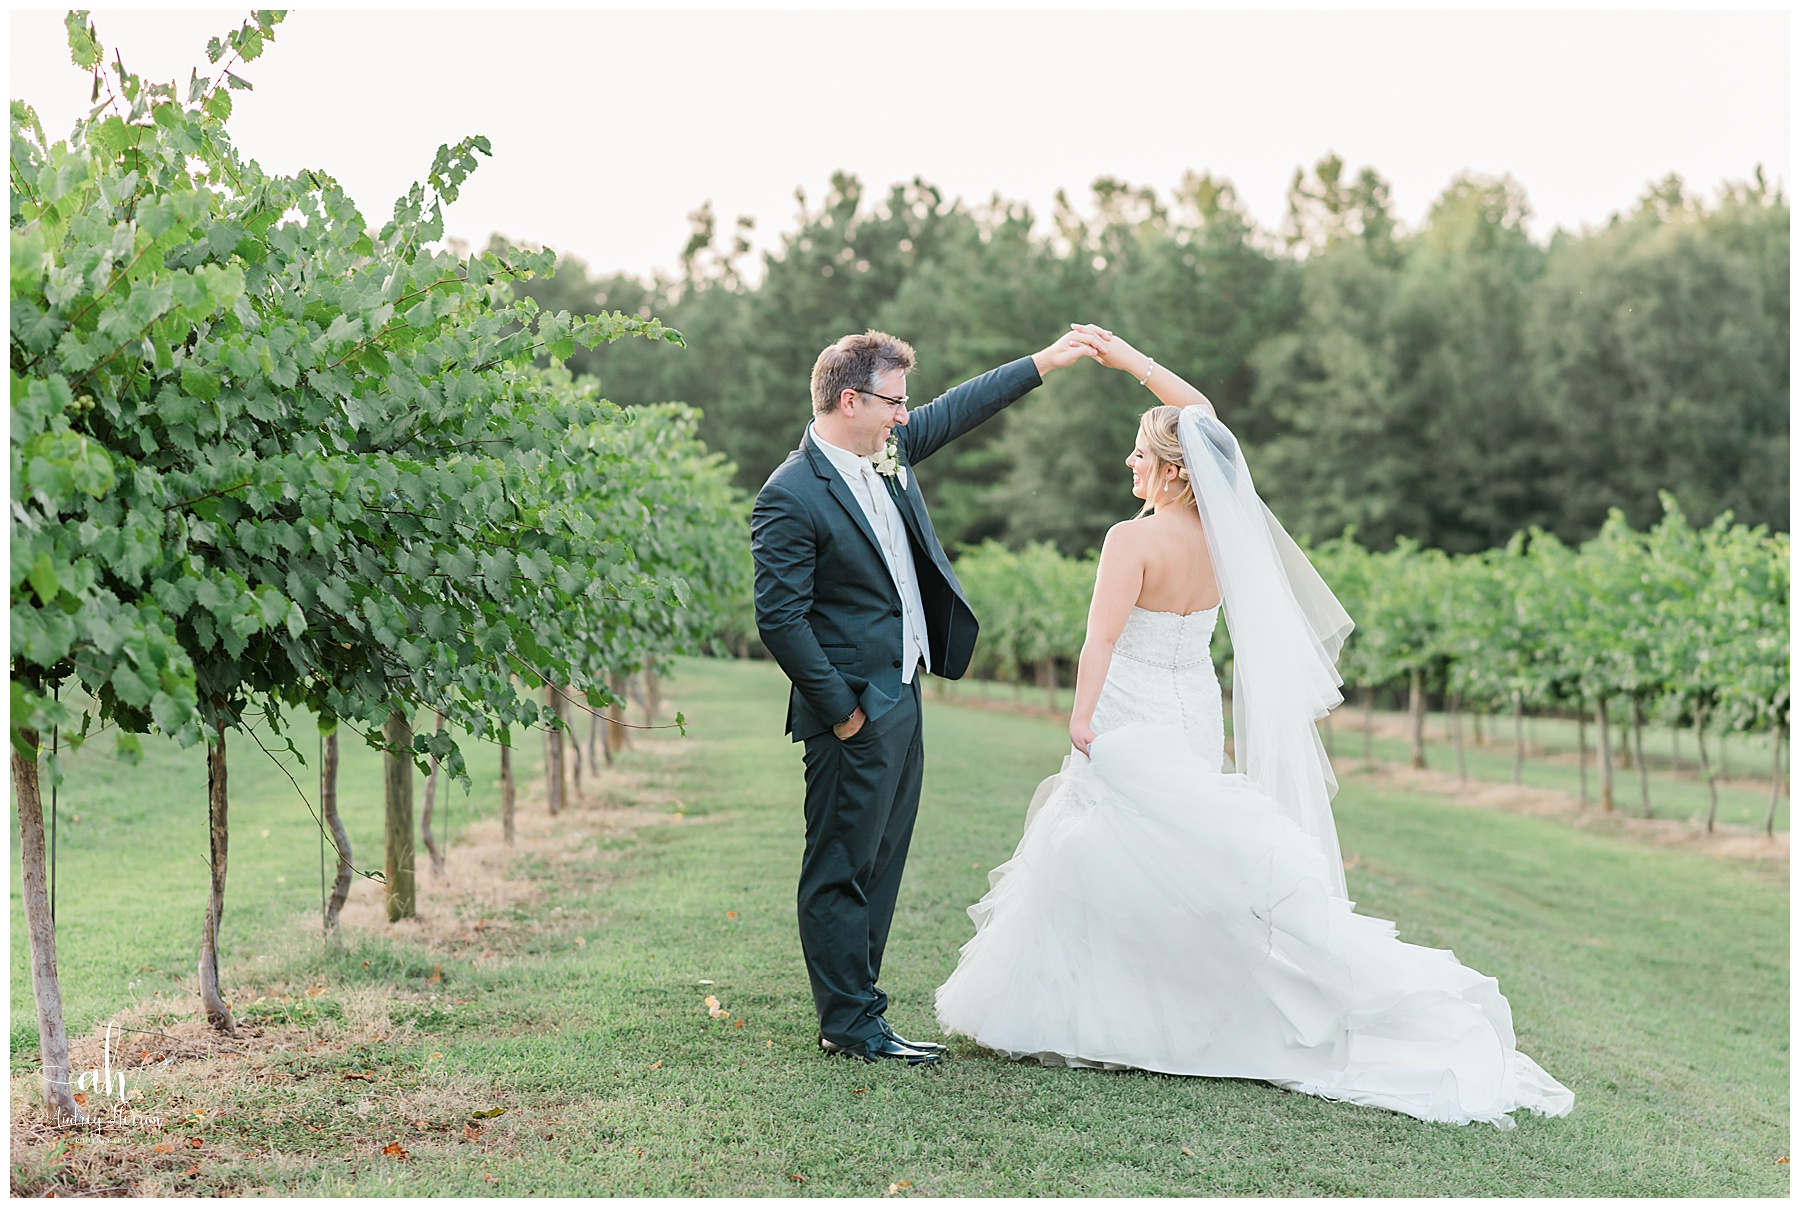 Farm at High Shoals Wedding, The Farm at High Shoals, High Shoals Farm, Fairy Tale Wedding, Fairy Tale, Georgia Wedding, Southern Wedding, Peaches